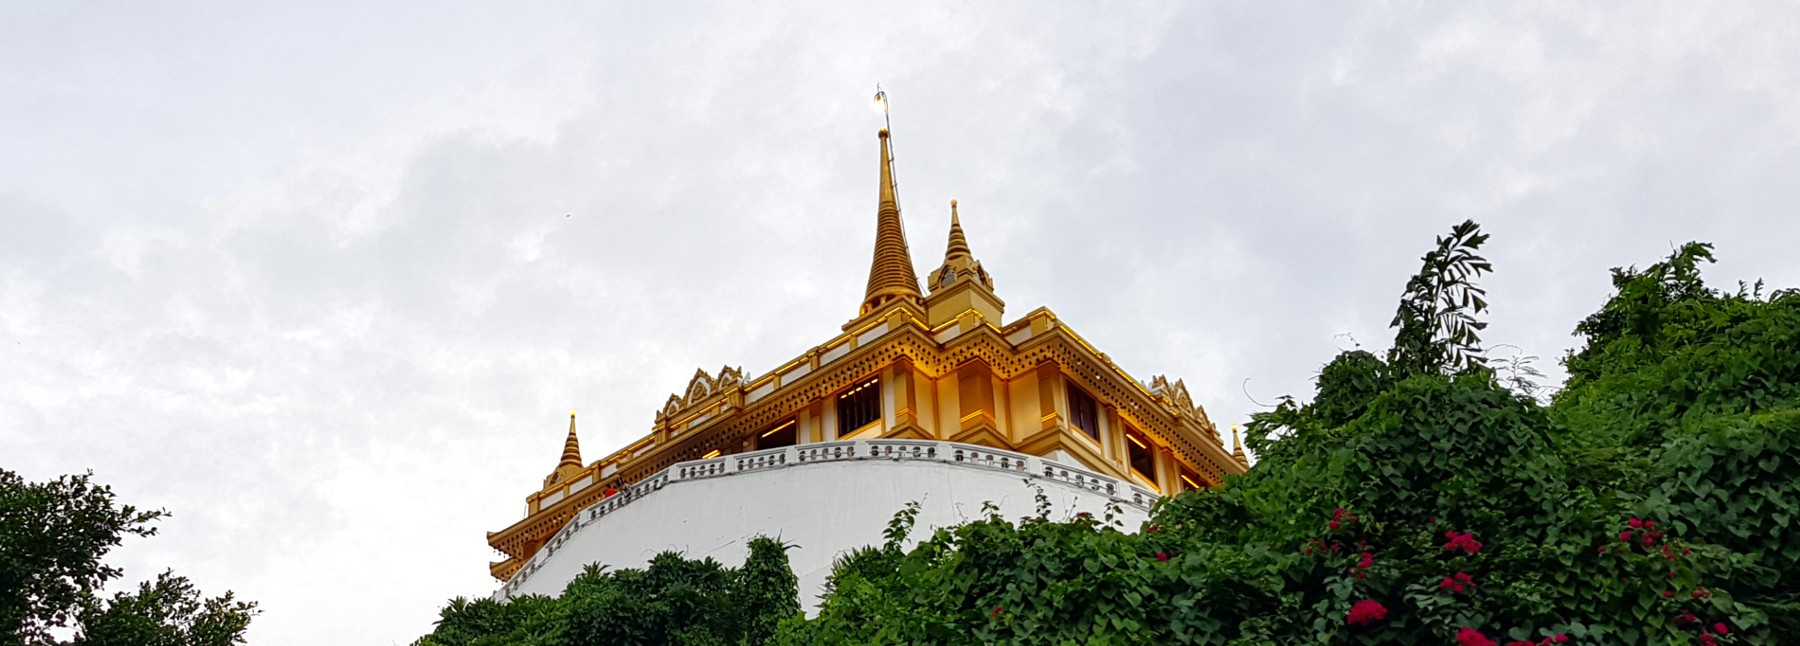 the-golden-mount-wat-saket